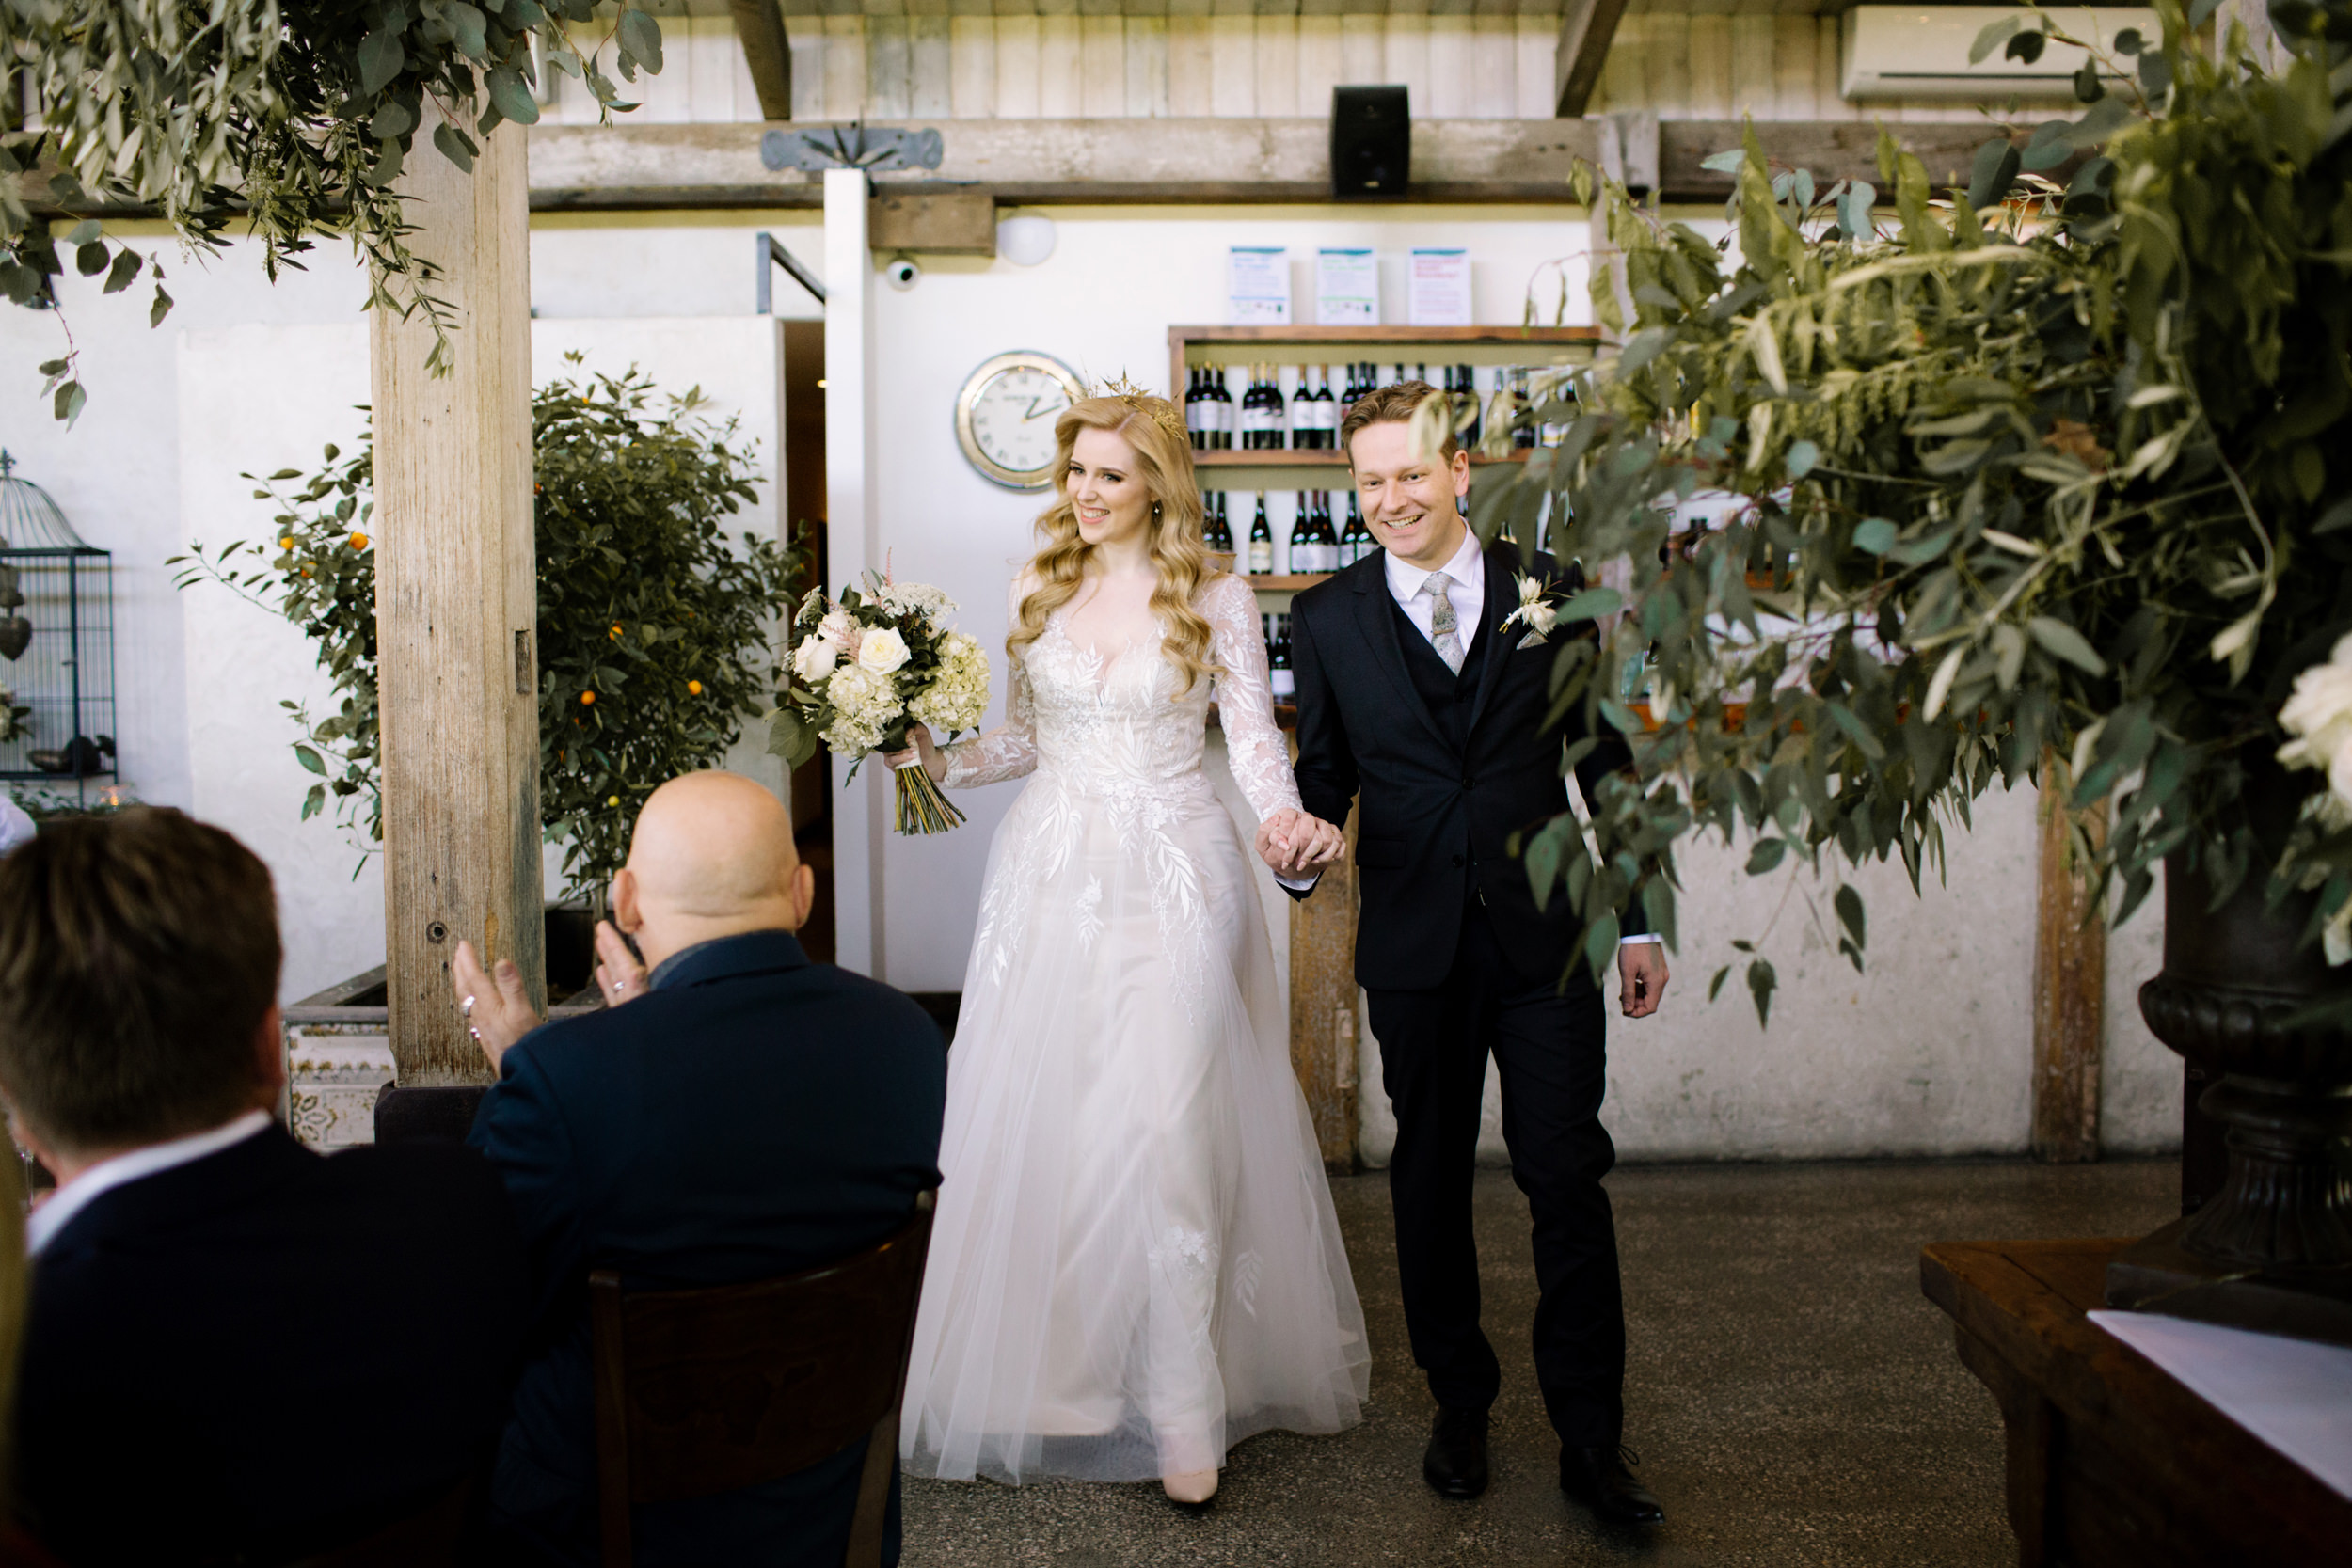 I-Got-You-Babe-&.Co.-Stones-of-the-Yarra-Valley-Wedding-Beverly-Ross0133.JPG